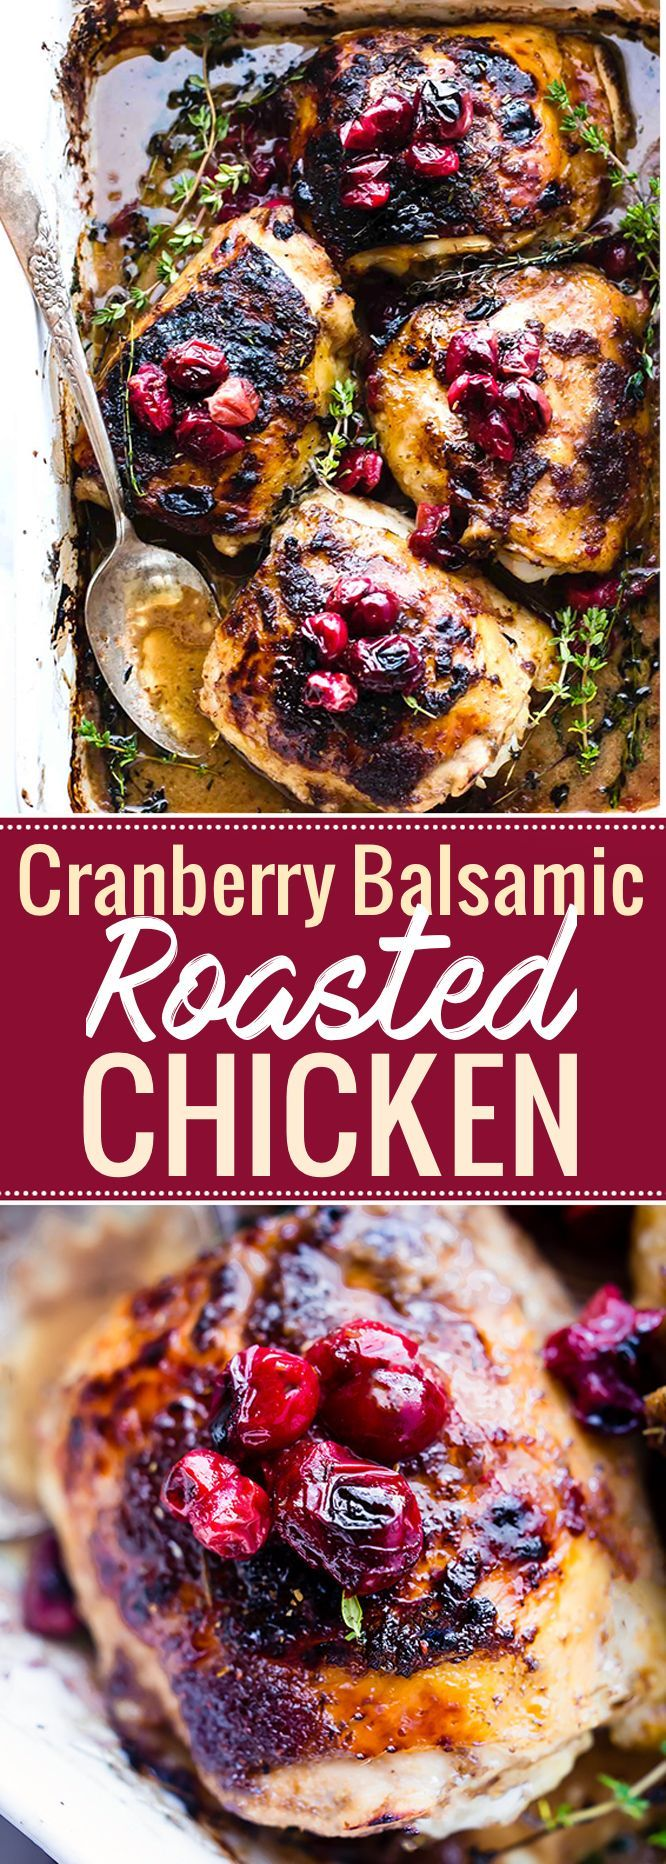 Balsamic Roasted Chicken with Cranberries prepped and cooked in ONE PAN! Yes, your holiday table is complete. This Paleo Cranberry Balsamic Roasted Chicken is a simple yet healthy dinner. A sweet tangy marinade makes this roasted chicken extra juicy and extra crispy. One of our go to meals for meal prep too!  http://www.cottercrunch.com /cottercrunch/.com